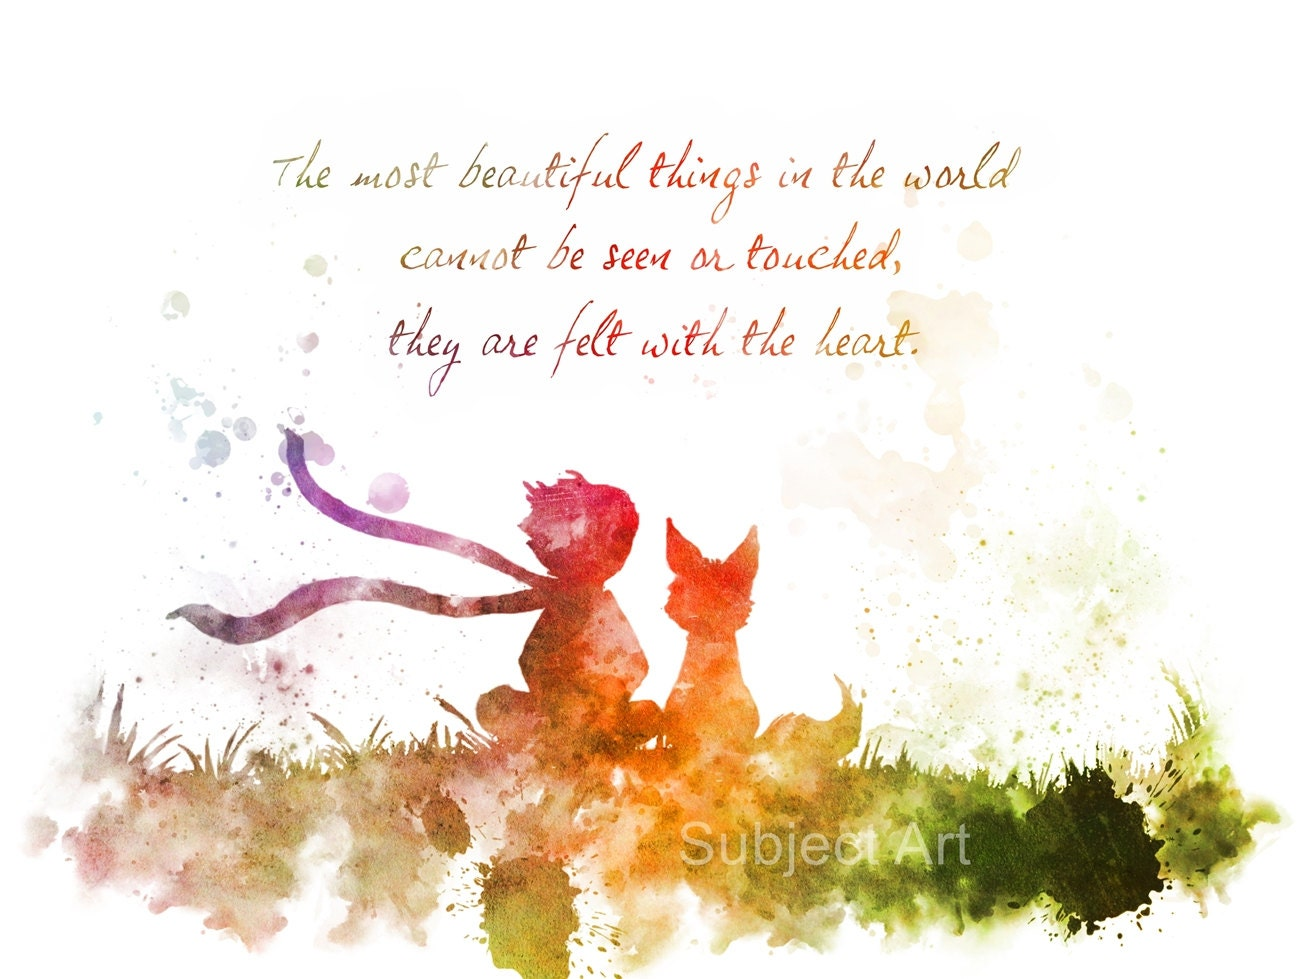 The Little Prince Inspired Quote 2nd Edition ART PRINT